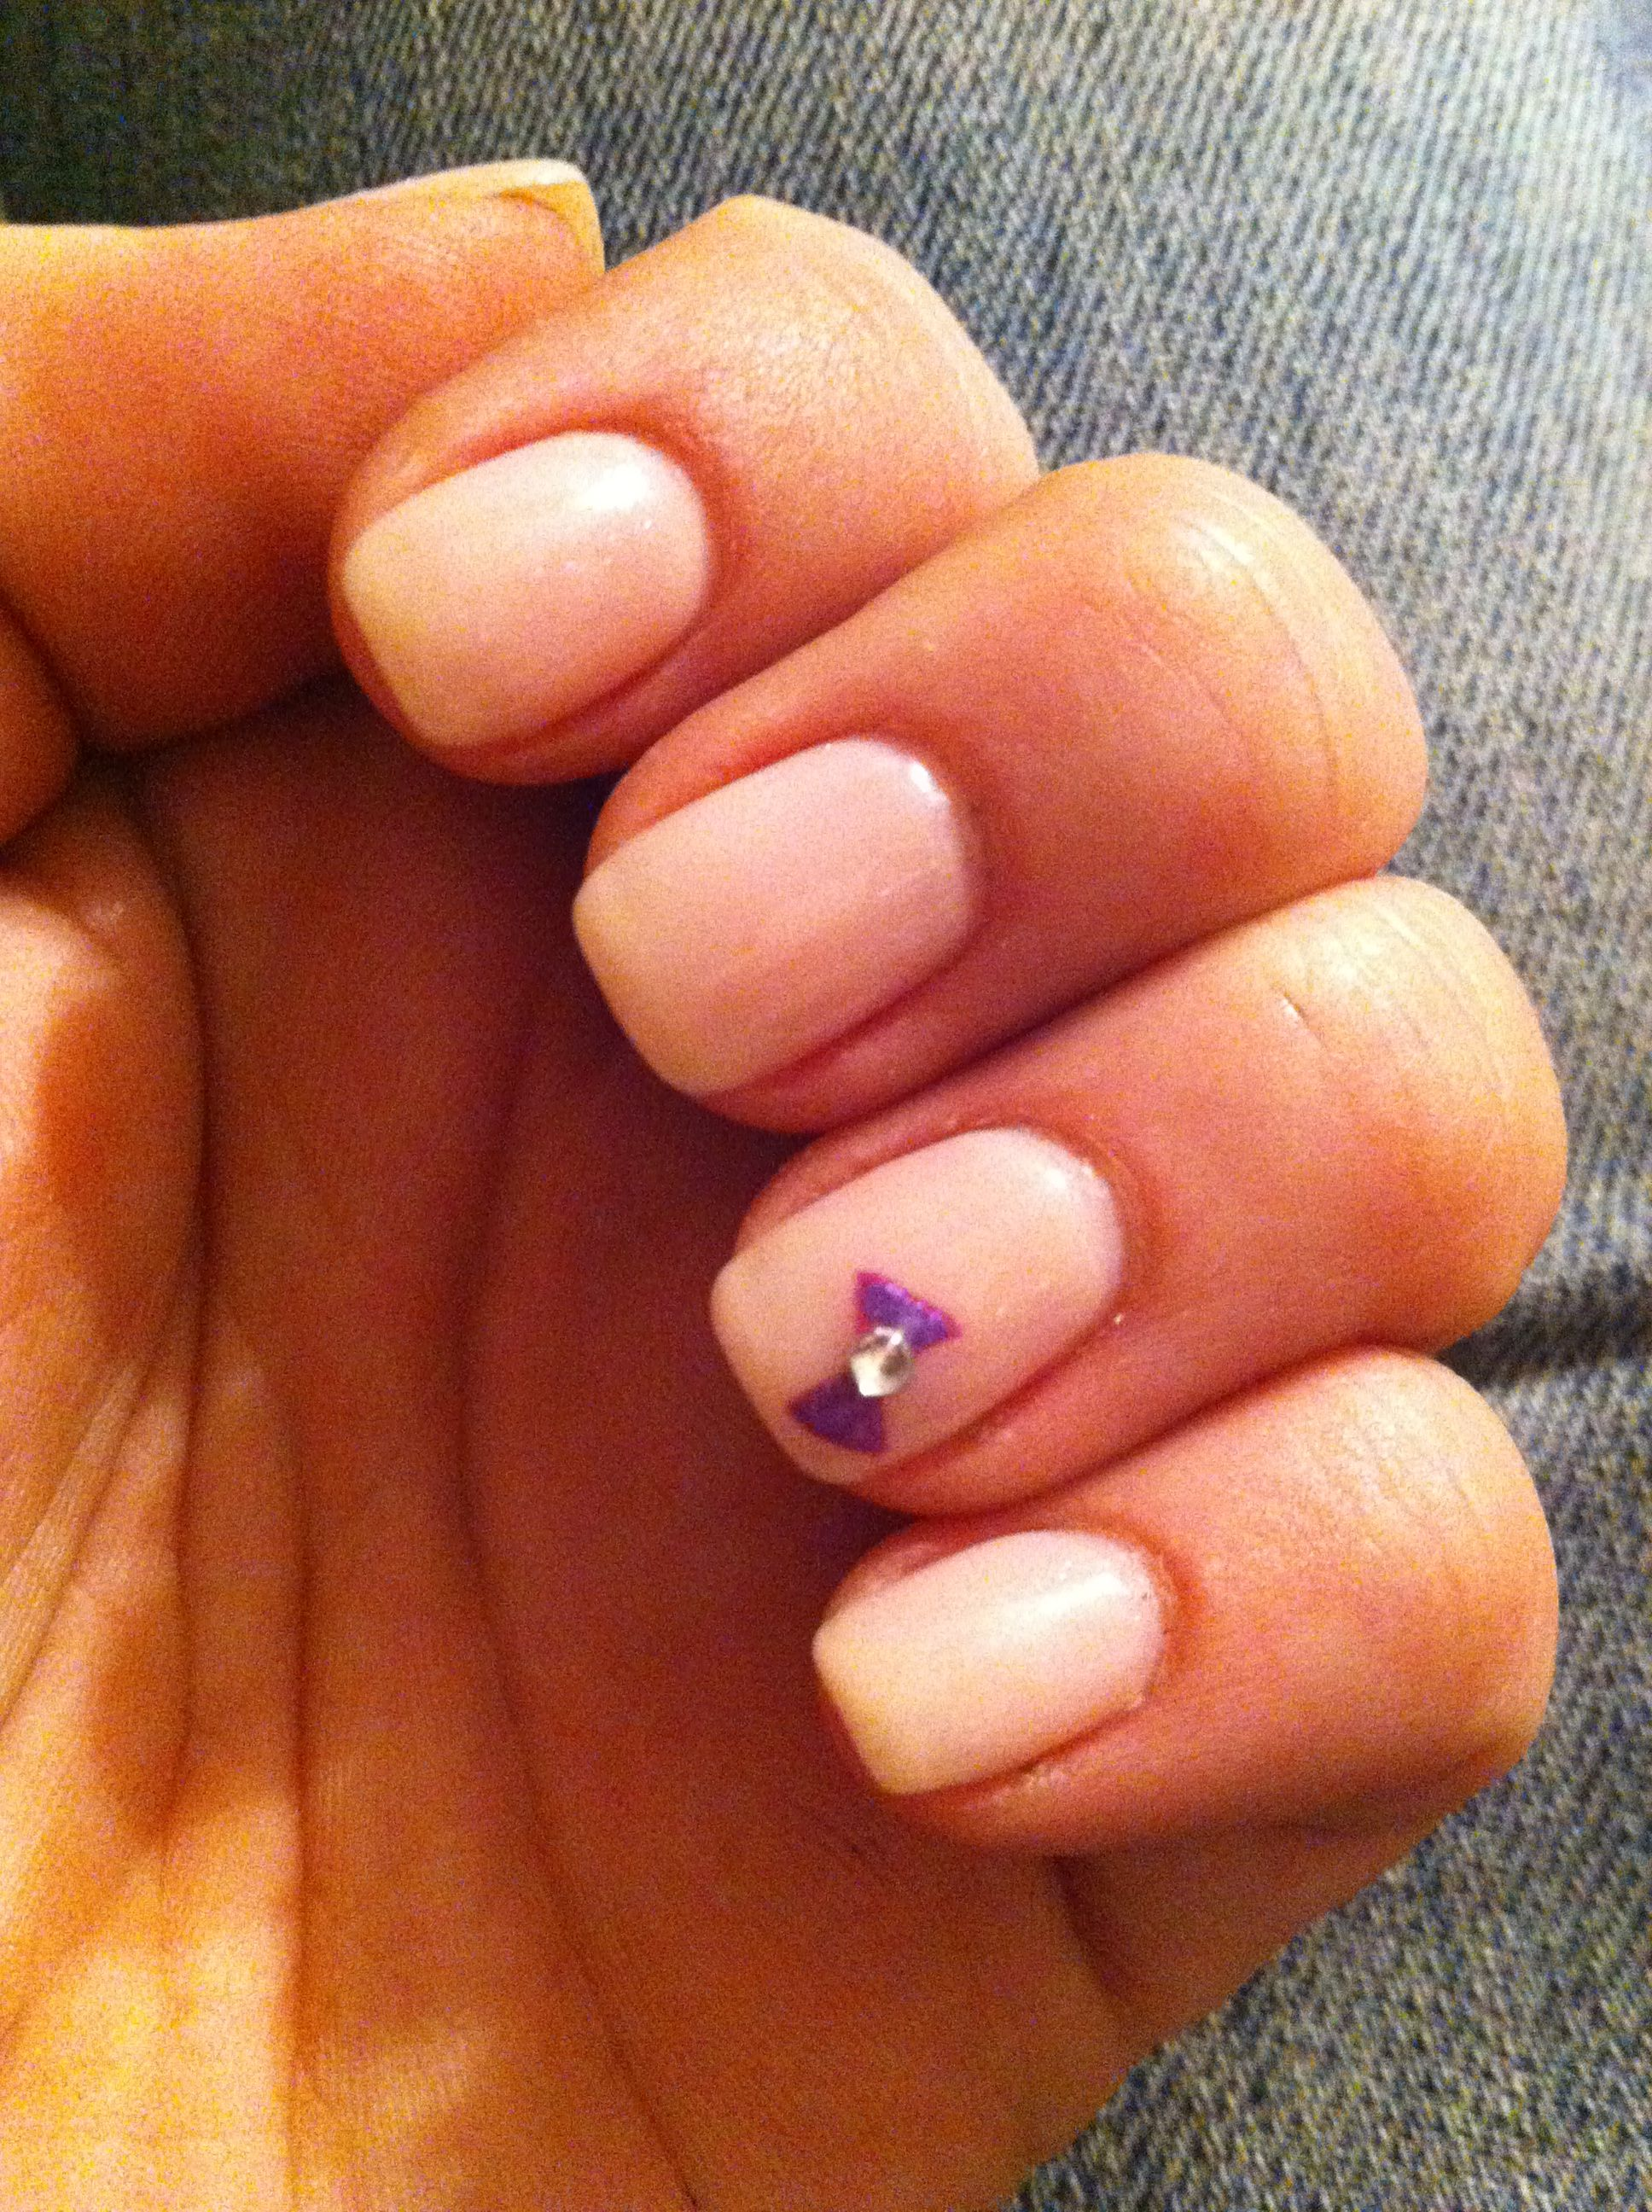 My nail art by lucy at nails nottingham nail art pinterest my nail art by lucy at nails nottingham prinsesfo Gallery